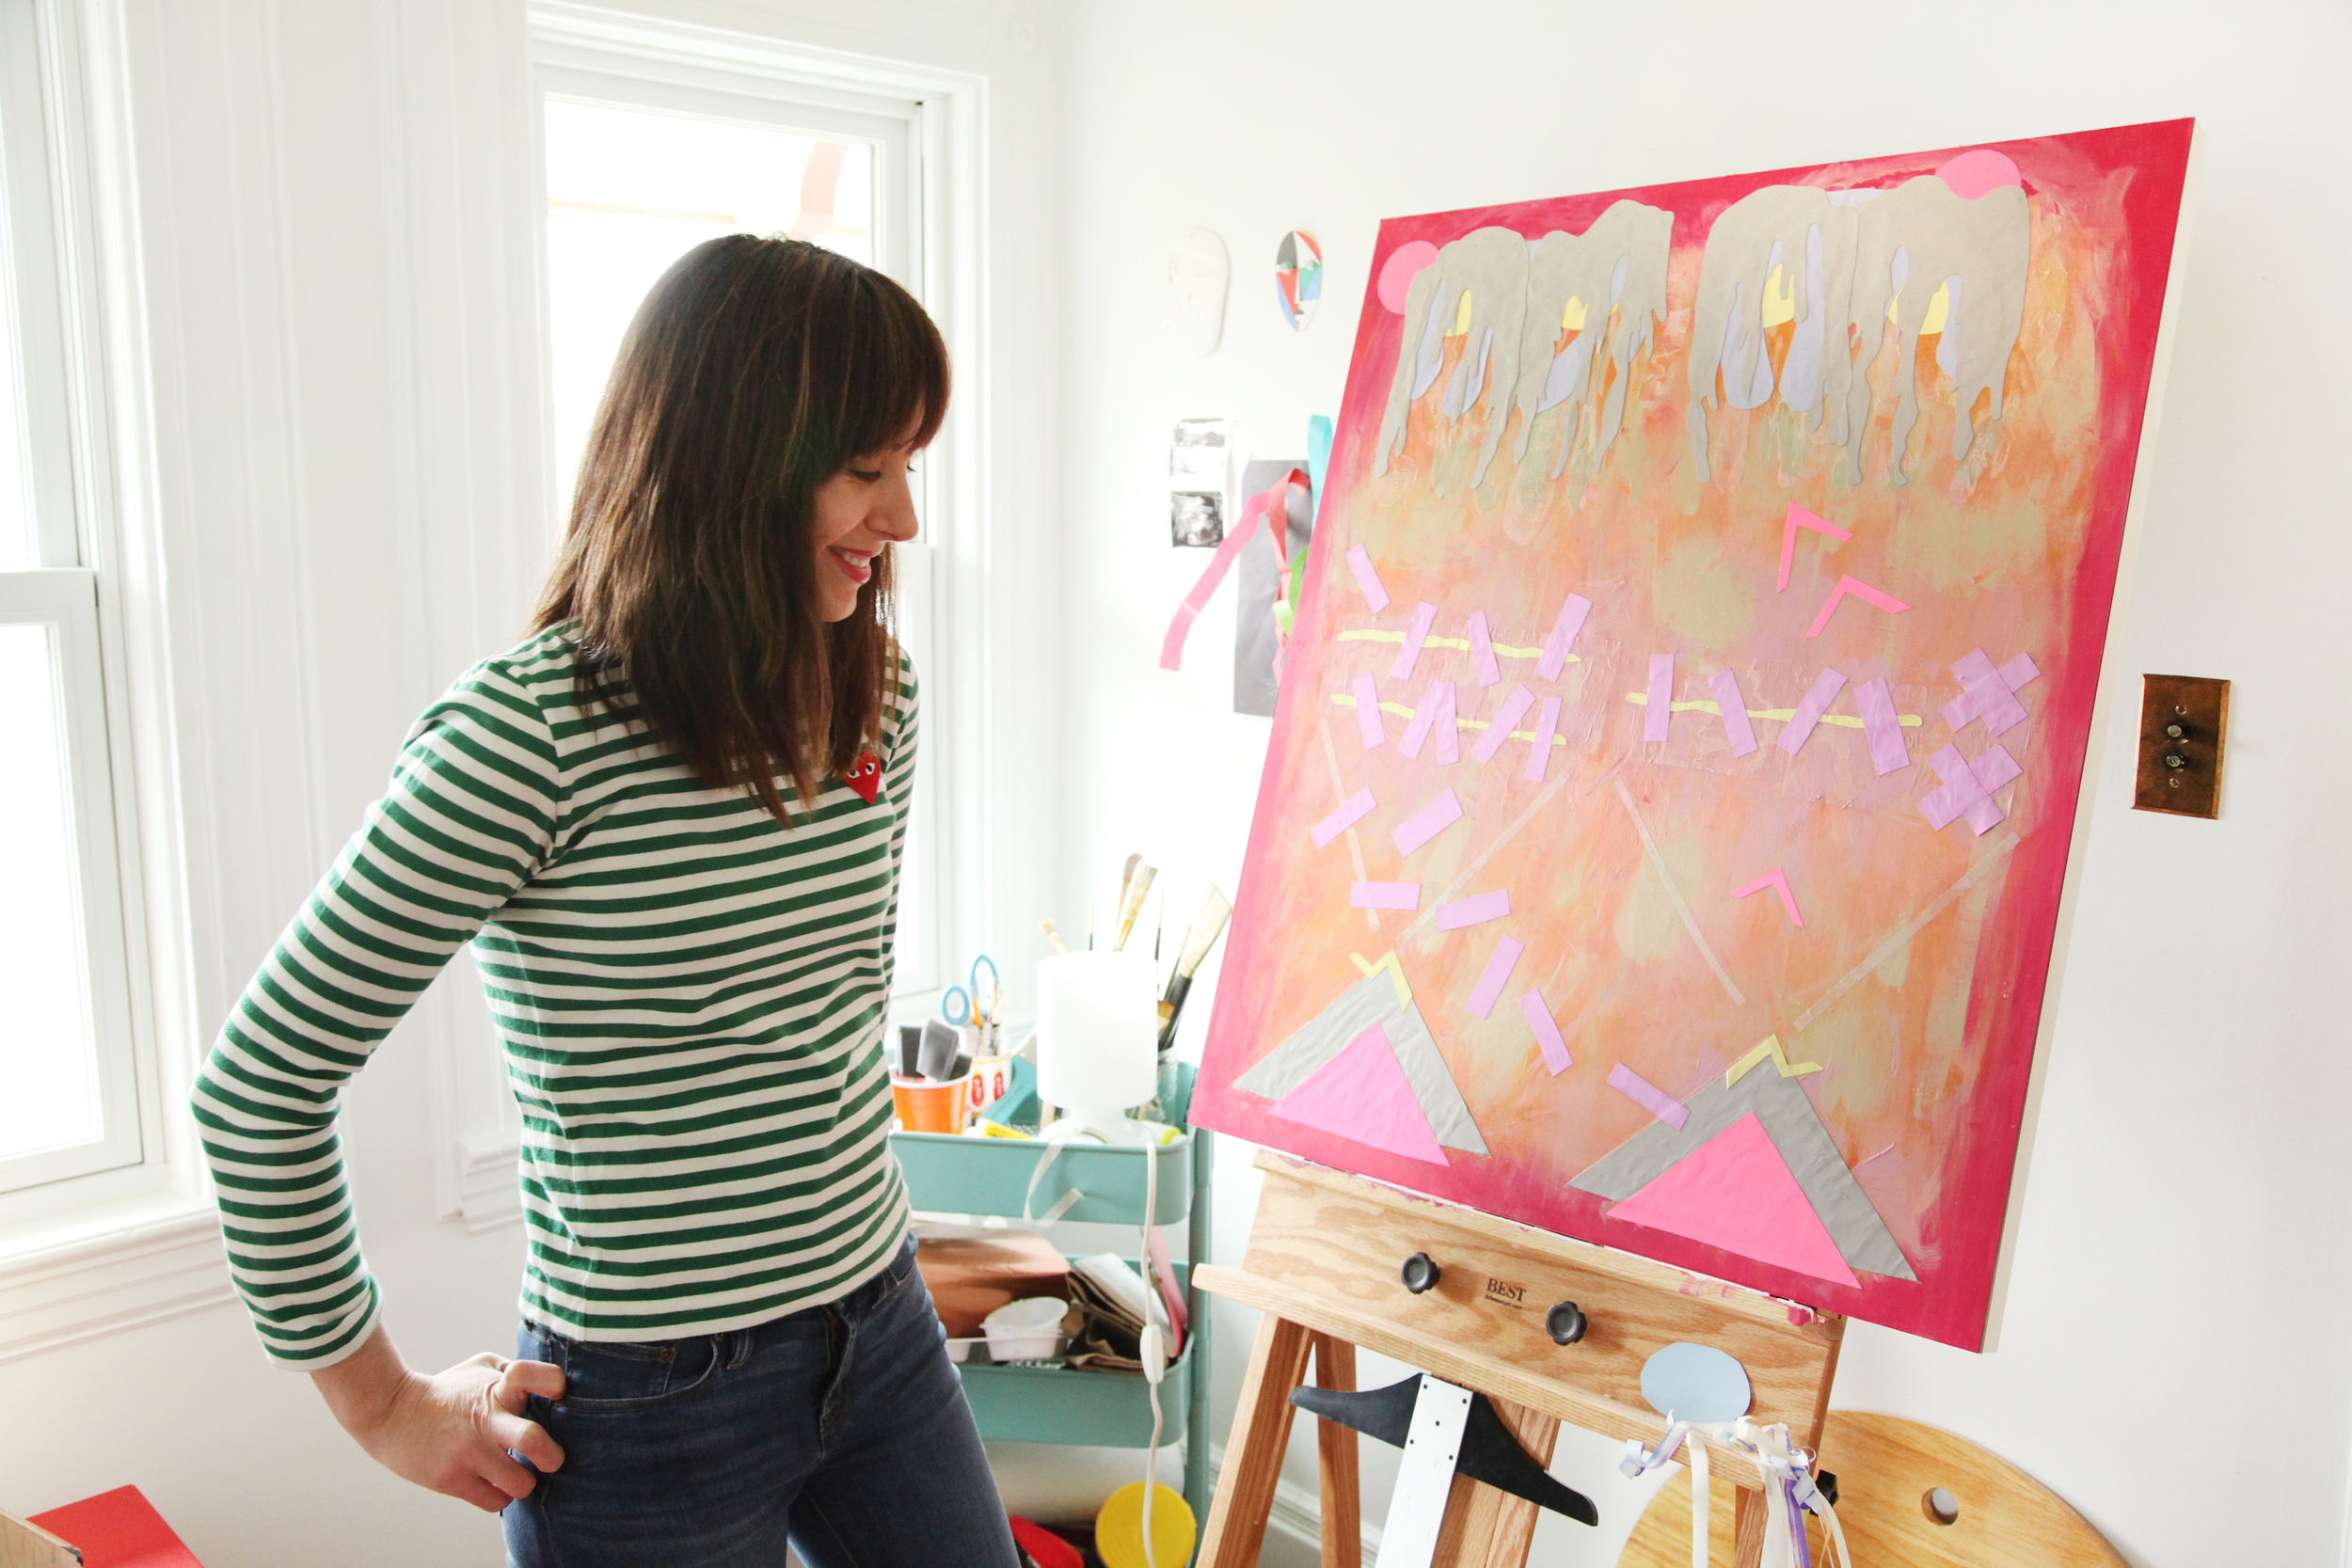 One of Danielle's first paintings in its early stage.